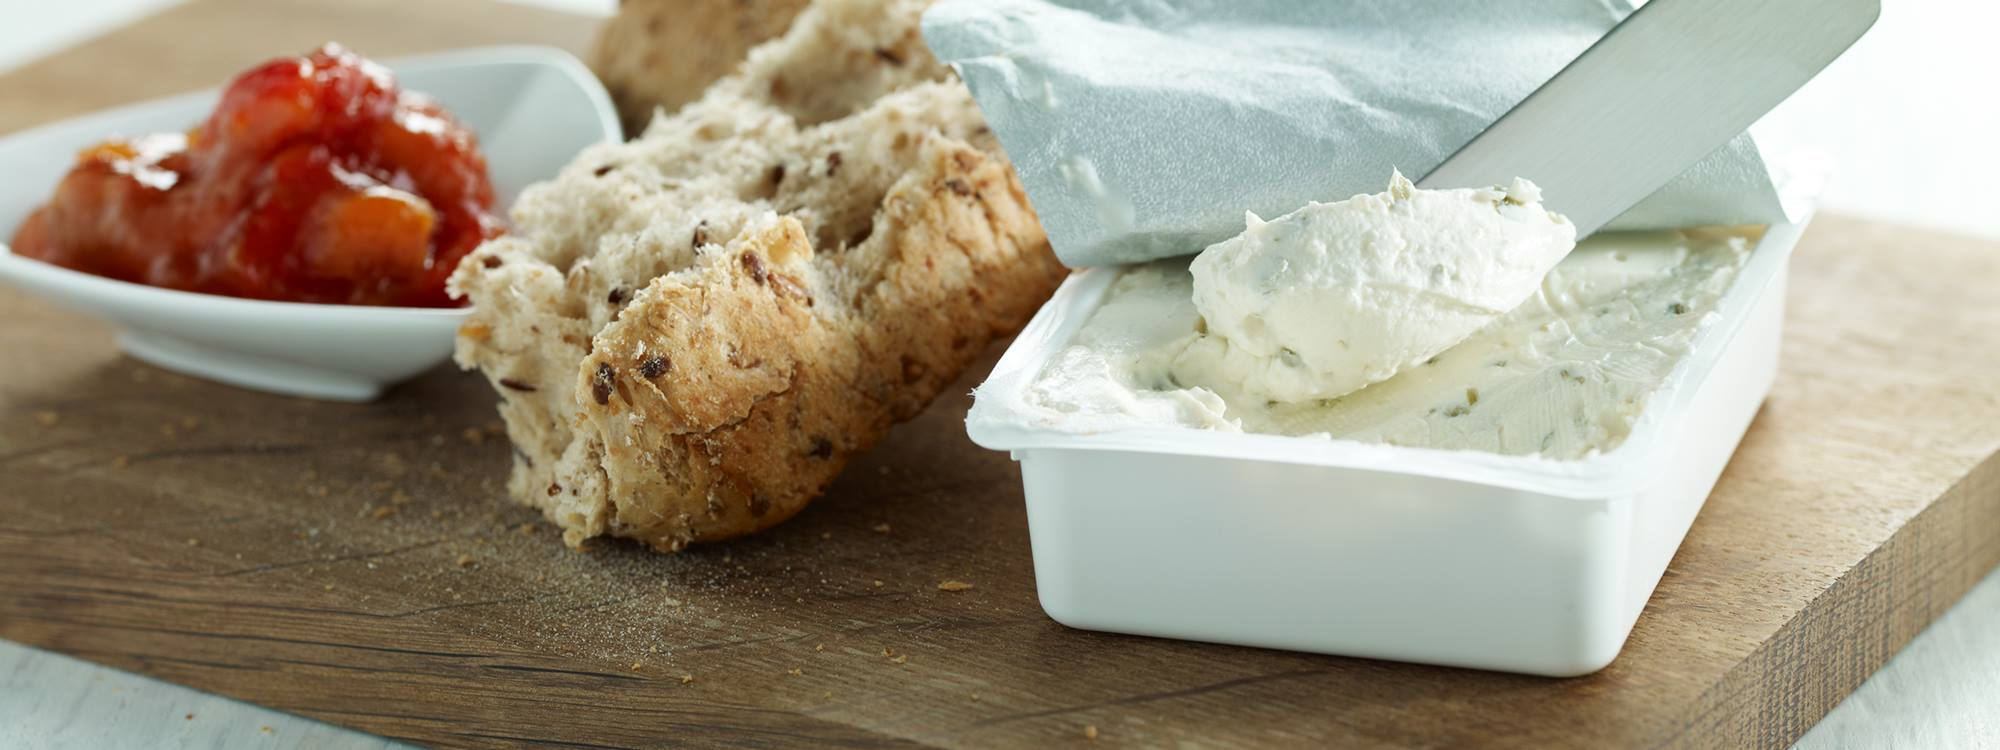 Smooth Cream cheese with optimised yield